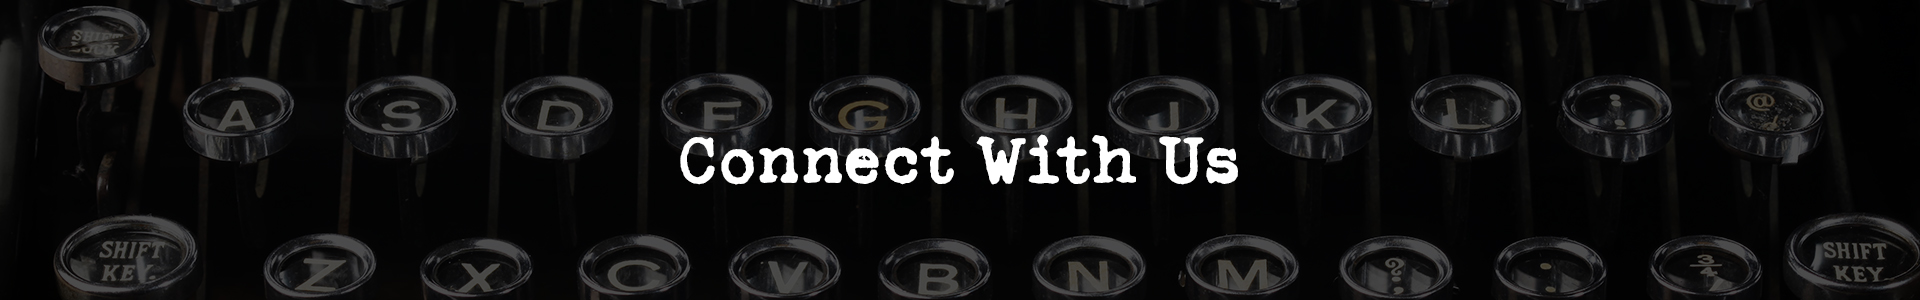 Social Ink Connect With Us